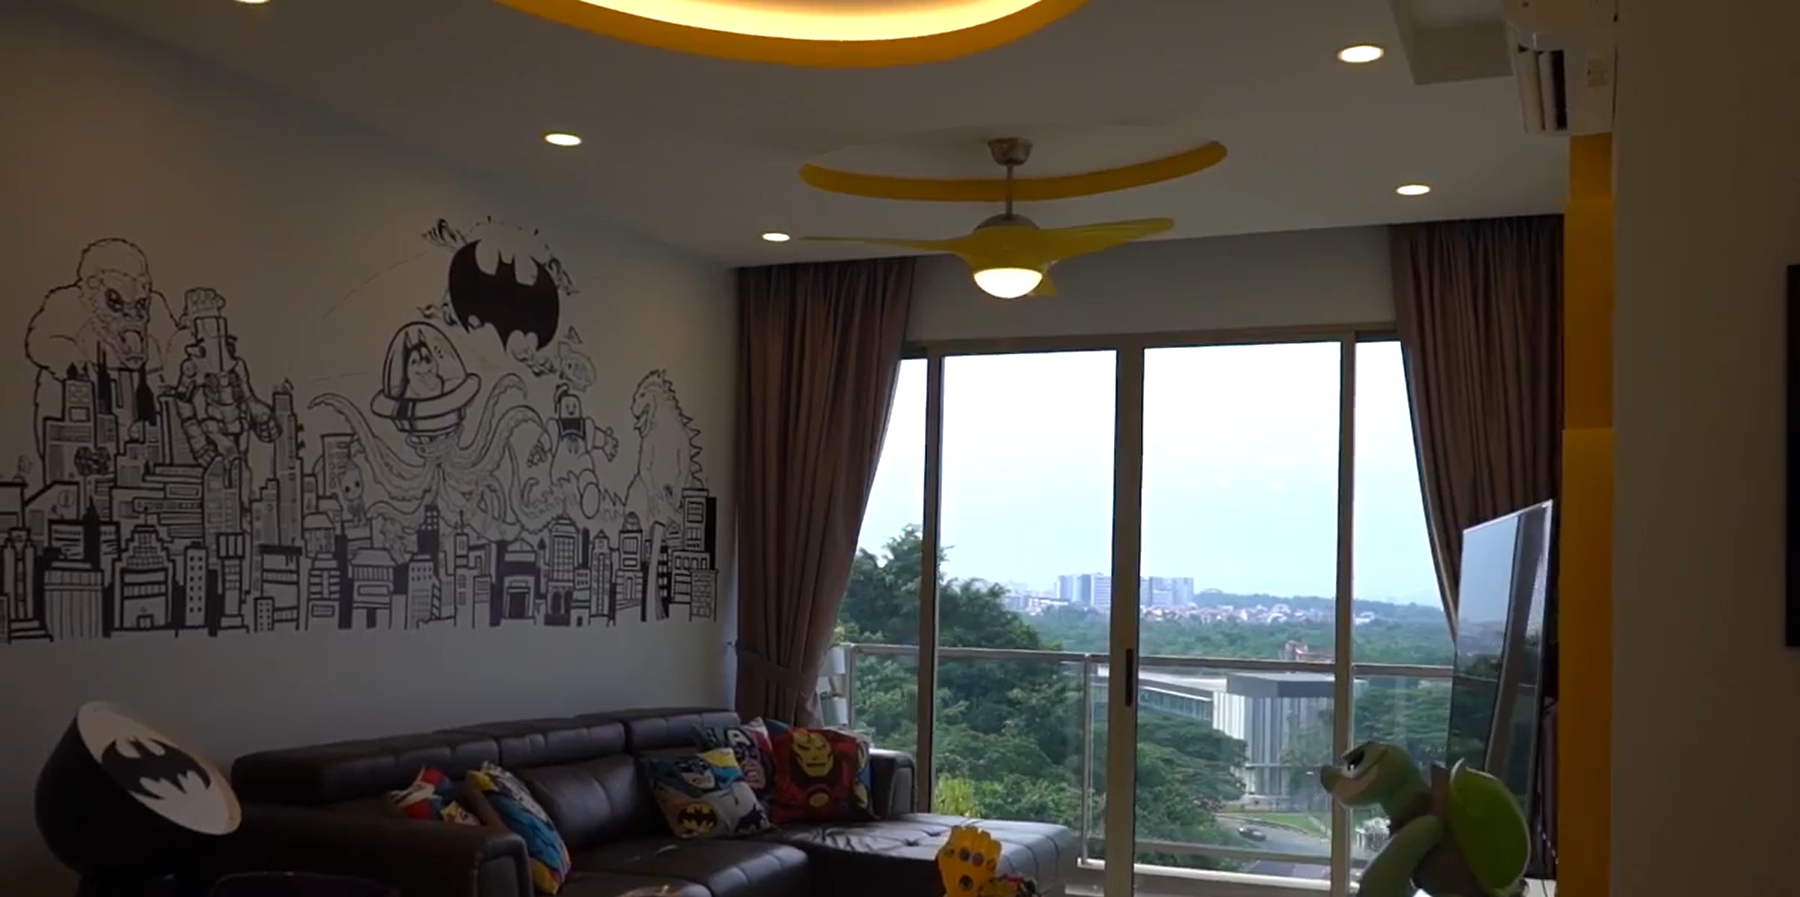 Interior Design Singapore | Mural and Grafitti Art Home (Free Space Intent)